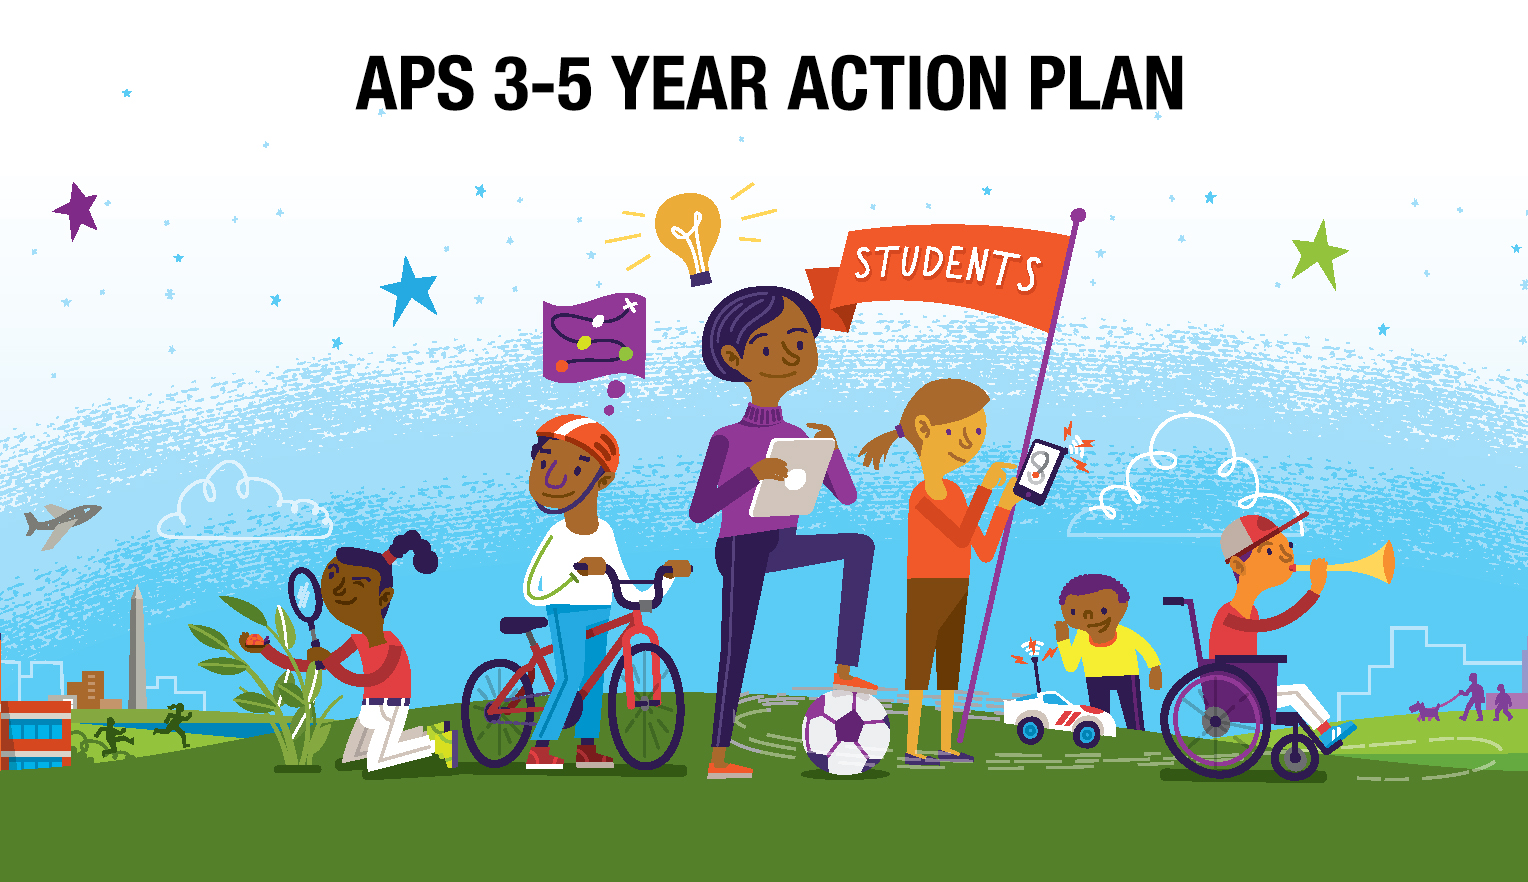 APS 3-5 Year Action Plan